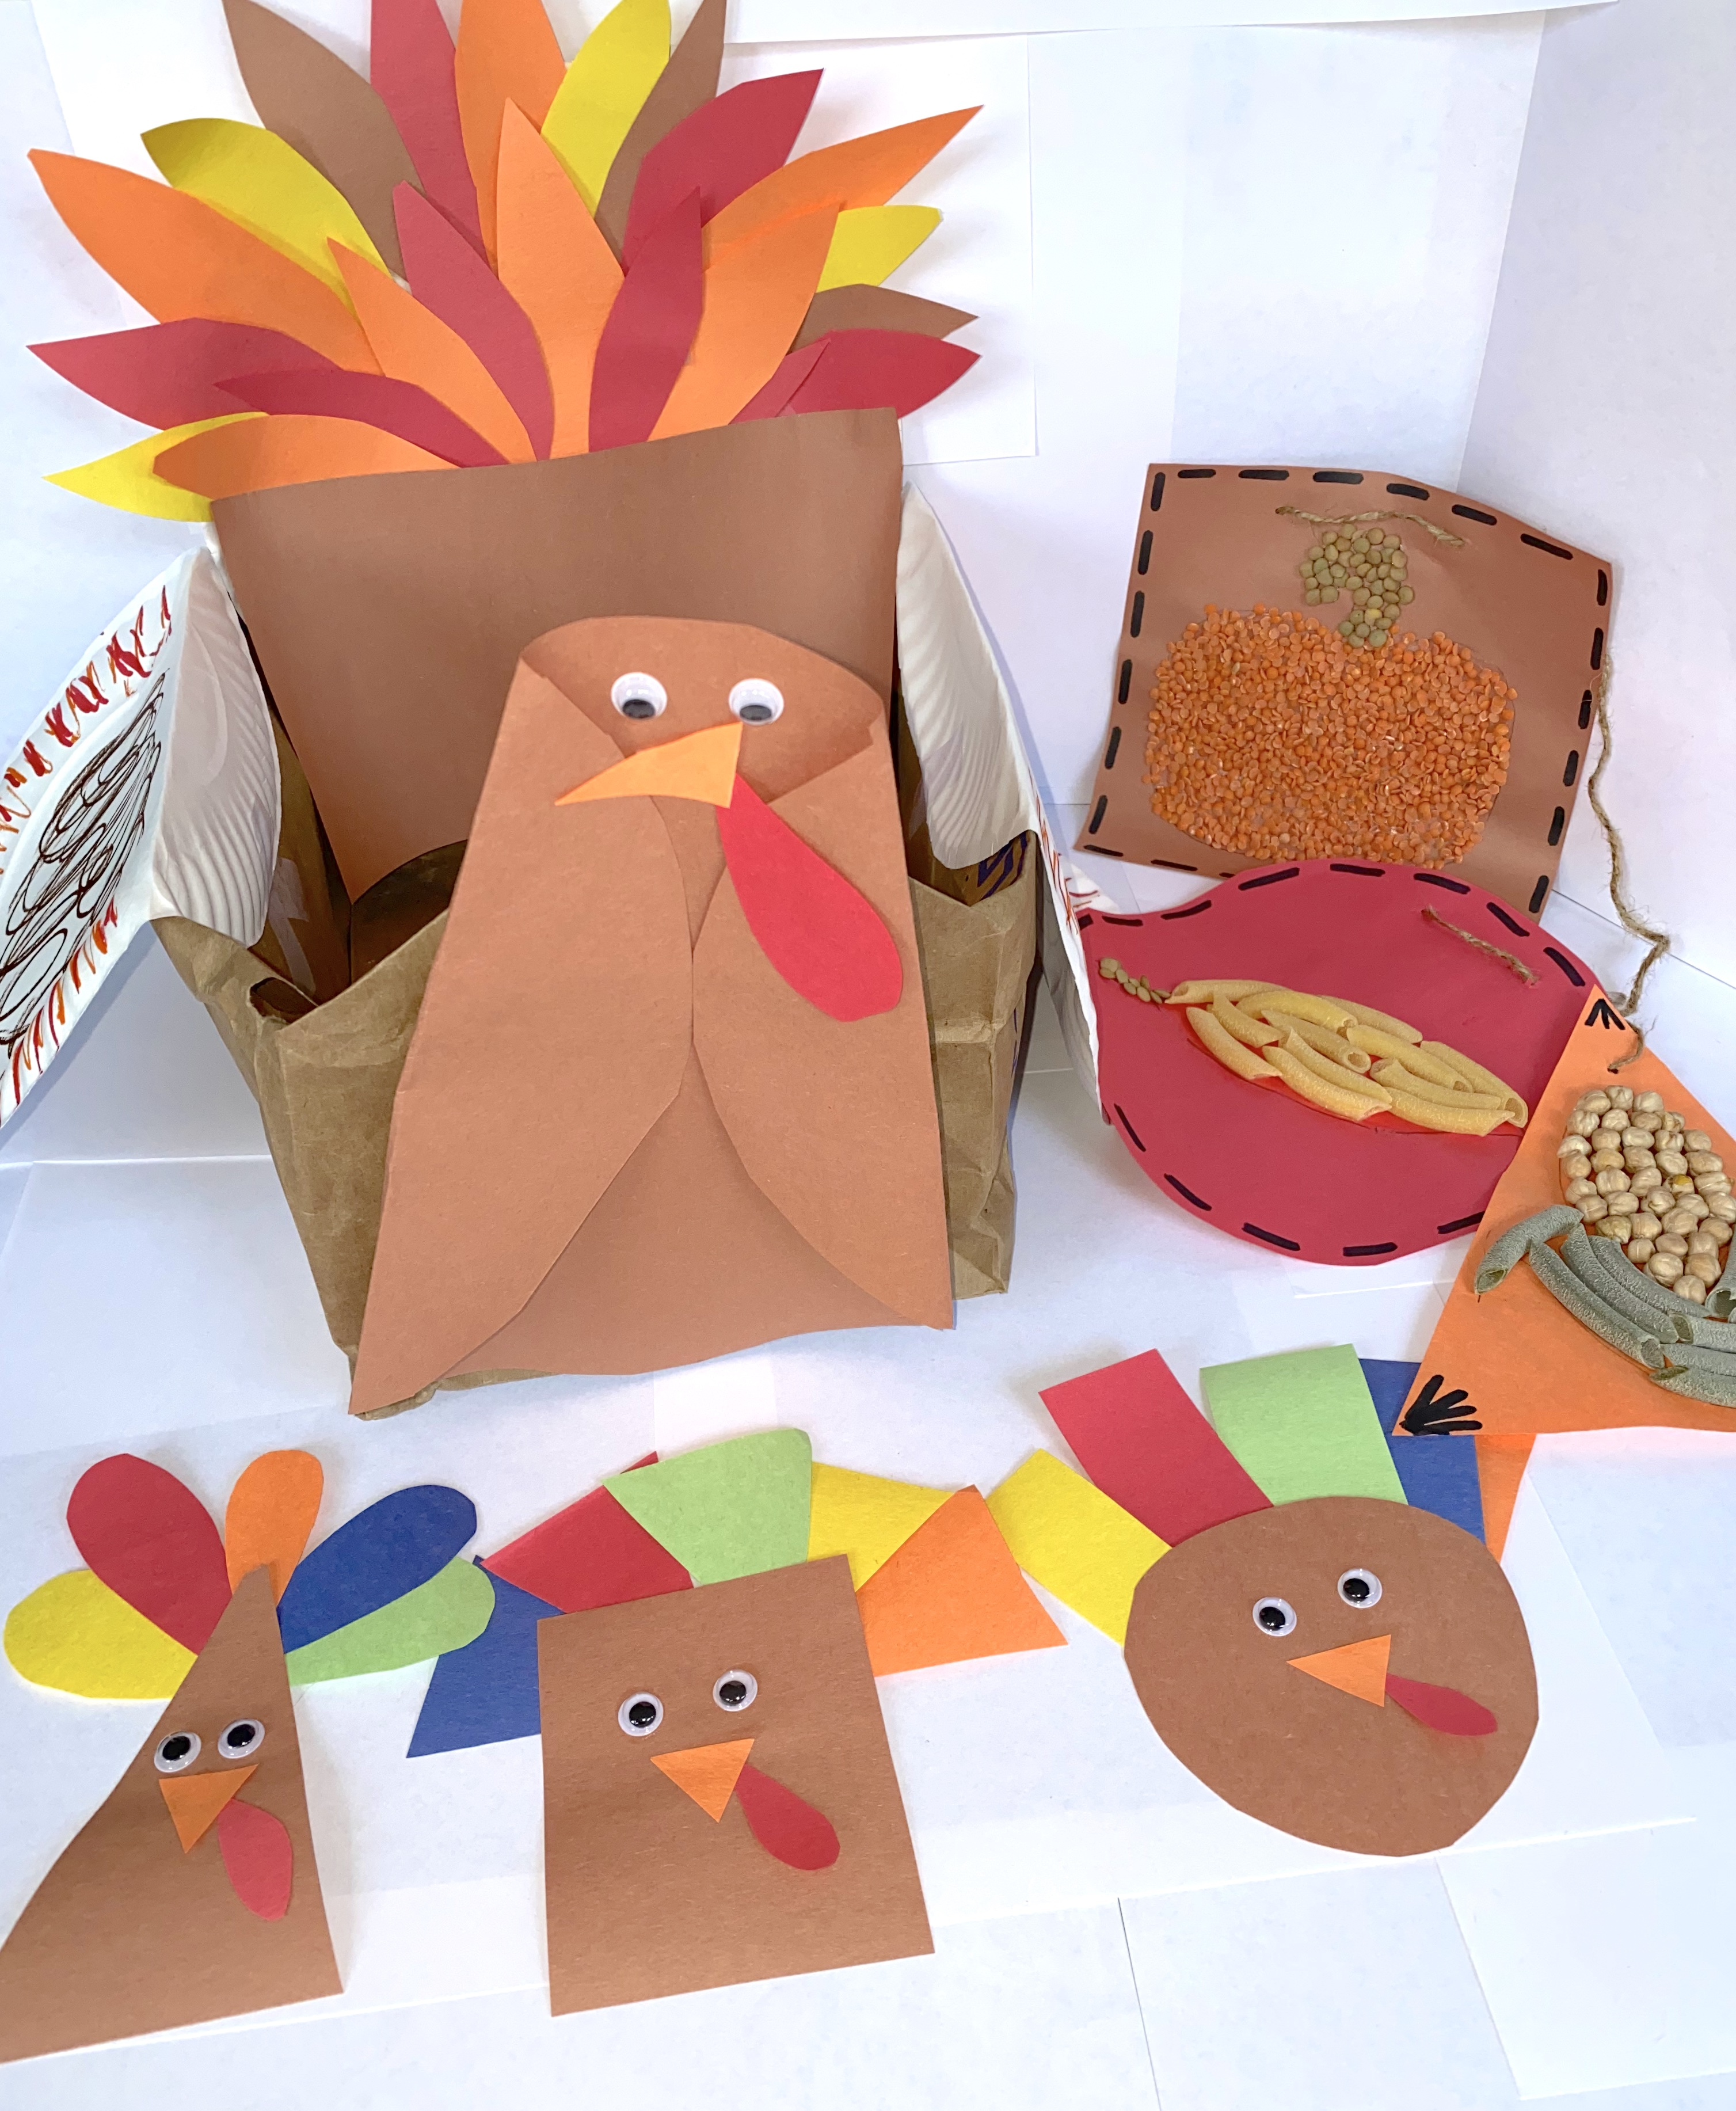 Celebrate the harvest season with these fun fall-themed activities!